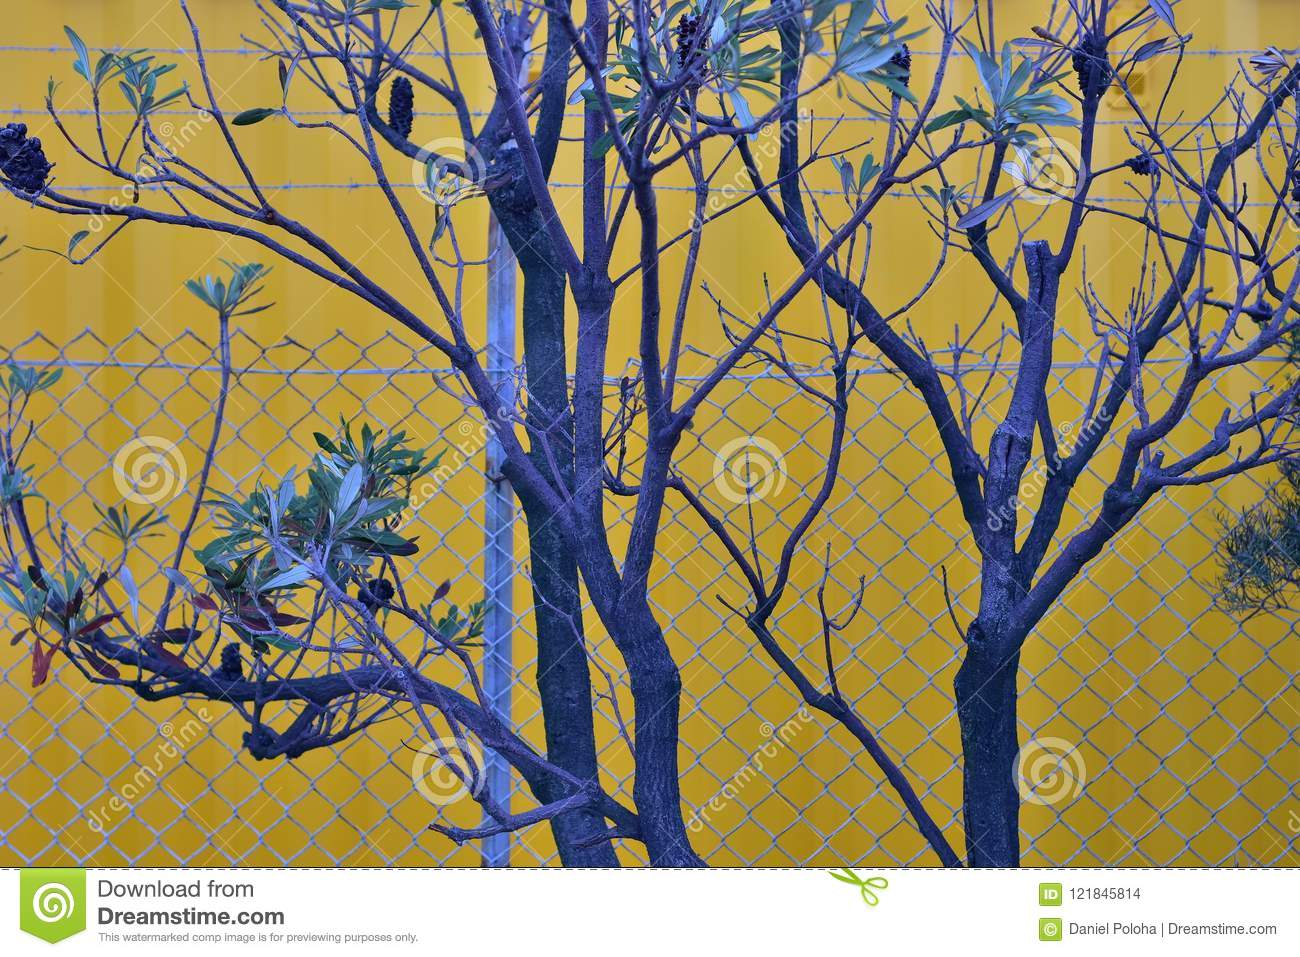 Blue tree and yellow wall stock photo. Image of metal - 121845814